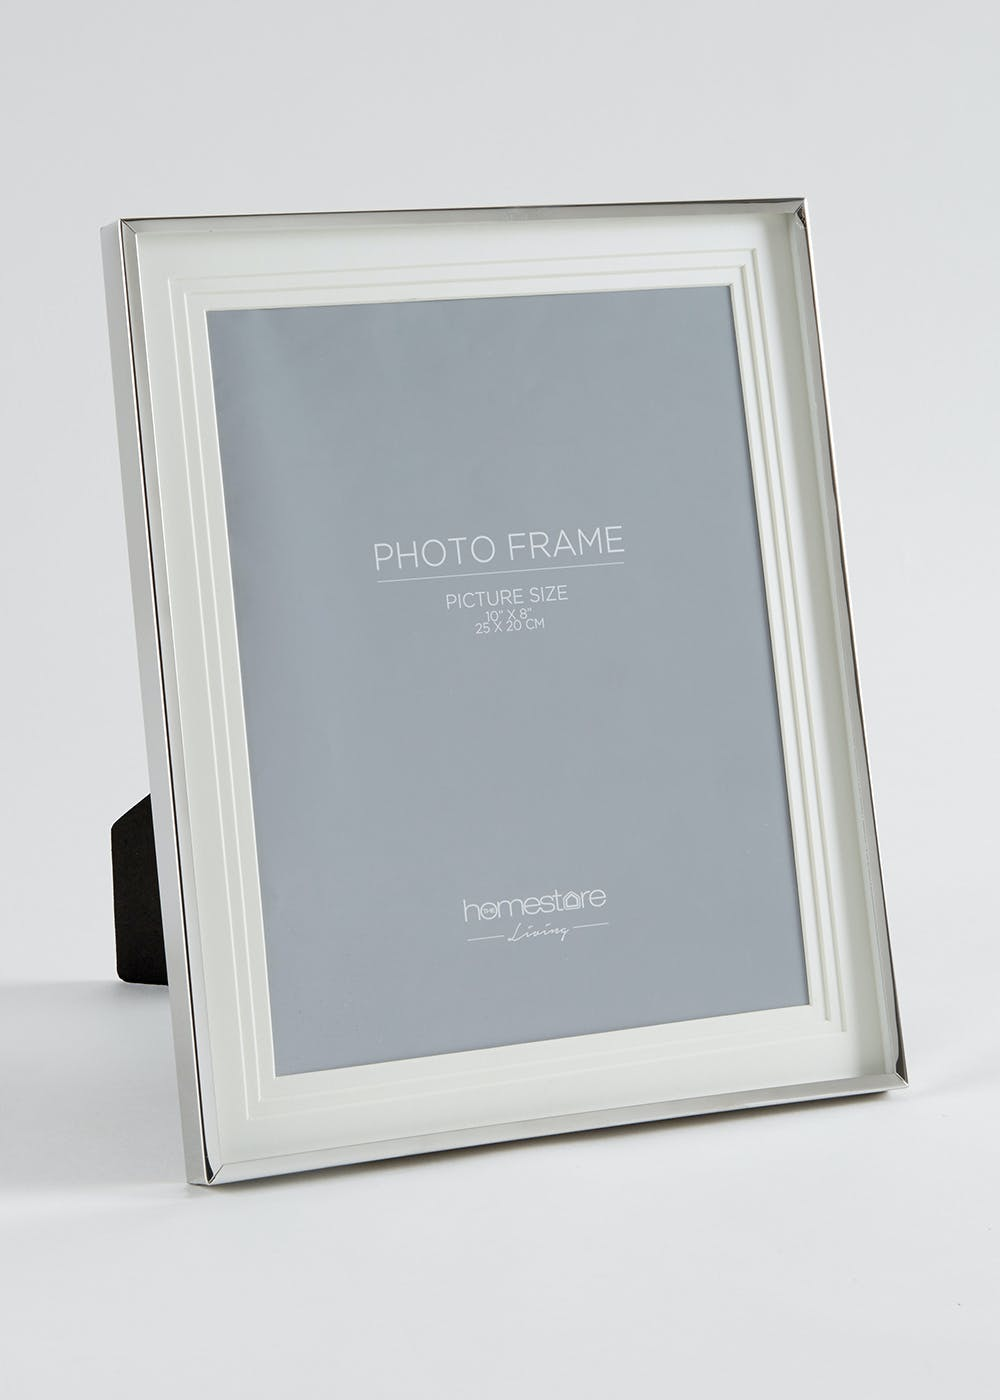 Stainless Steel Photo Frame 31cm X 26cm Silver Matalan